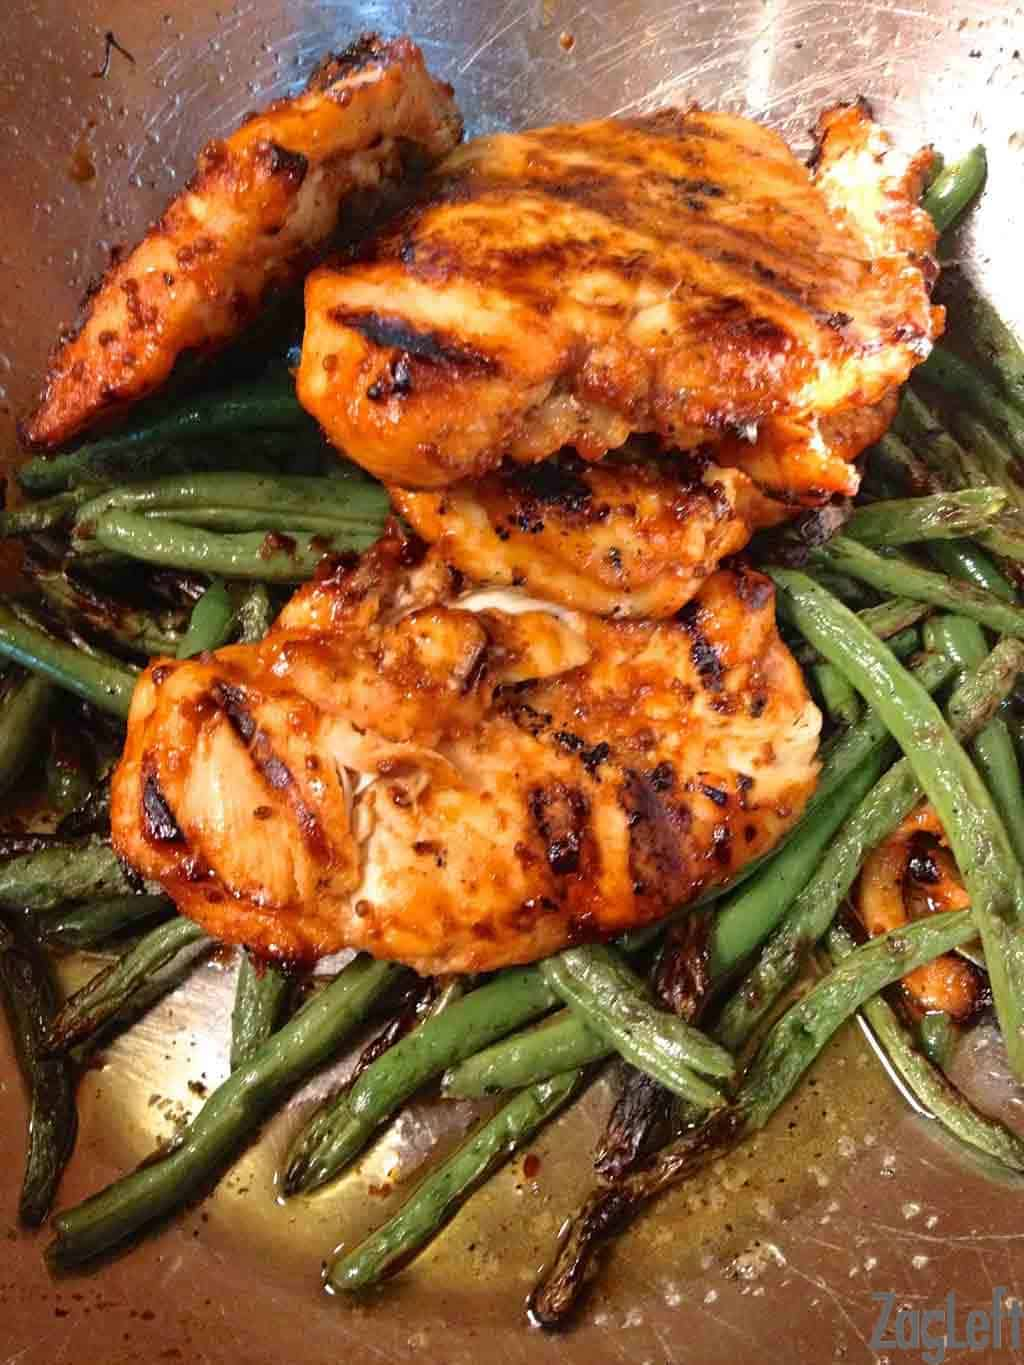 Three Honey Sriracha Glazed Chickens on a bed of roasted green beans in a large mixing bowl